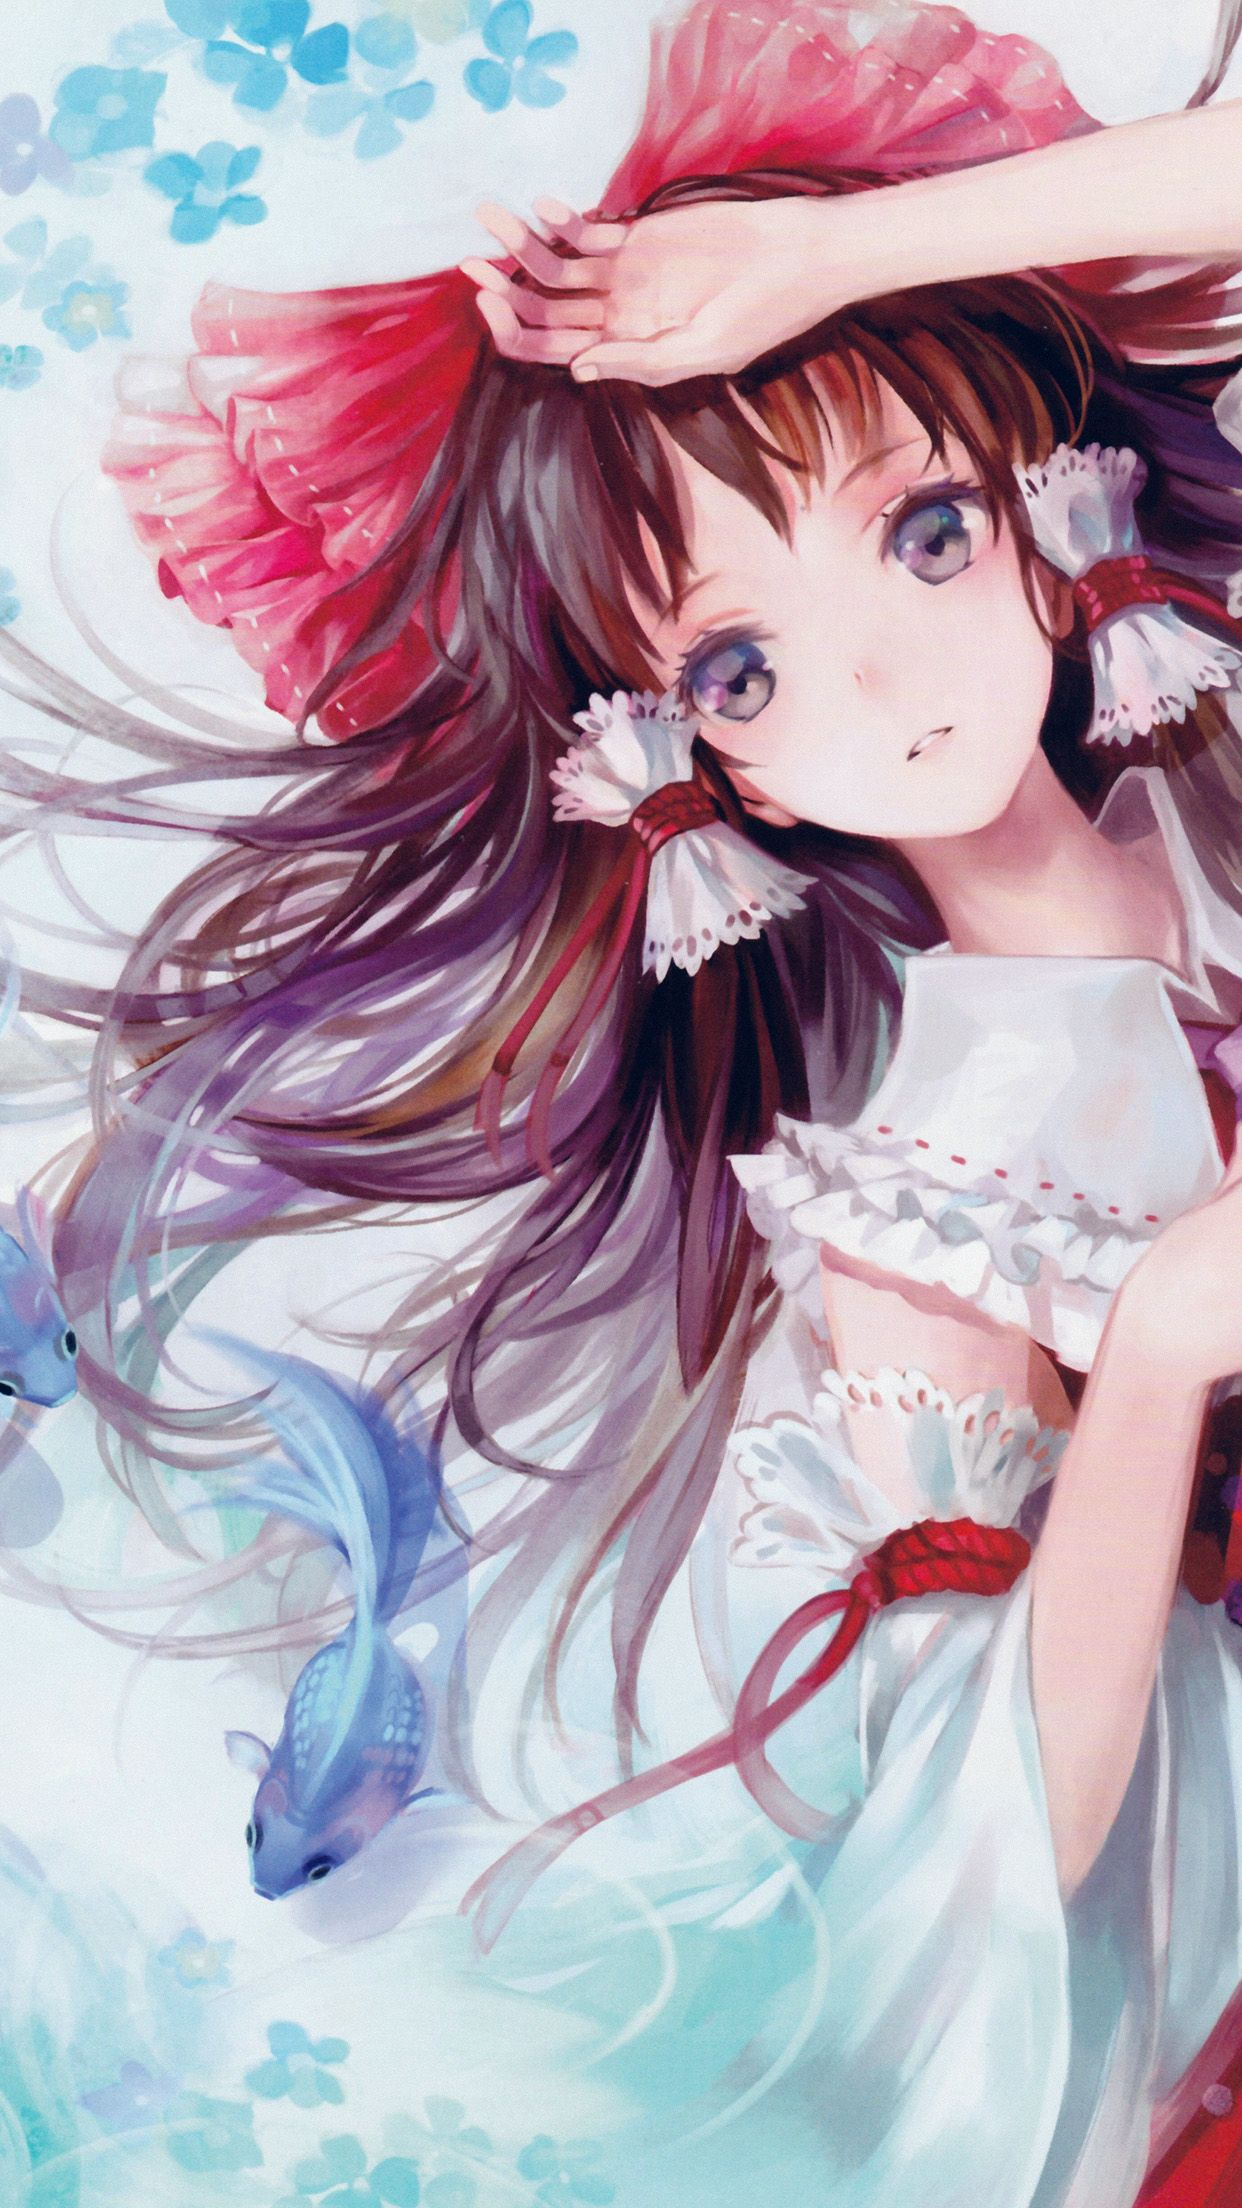 Anime Girl iPhone Wallpapers - Top Free Anime Girl iPhone